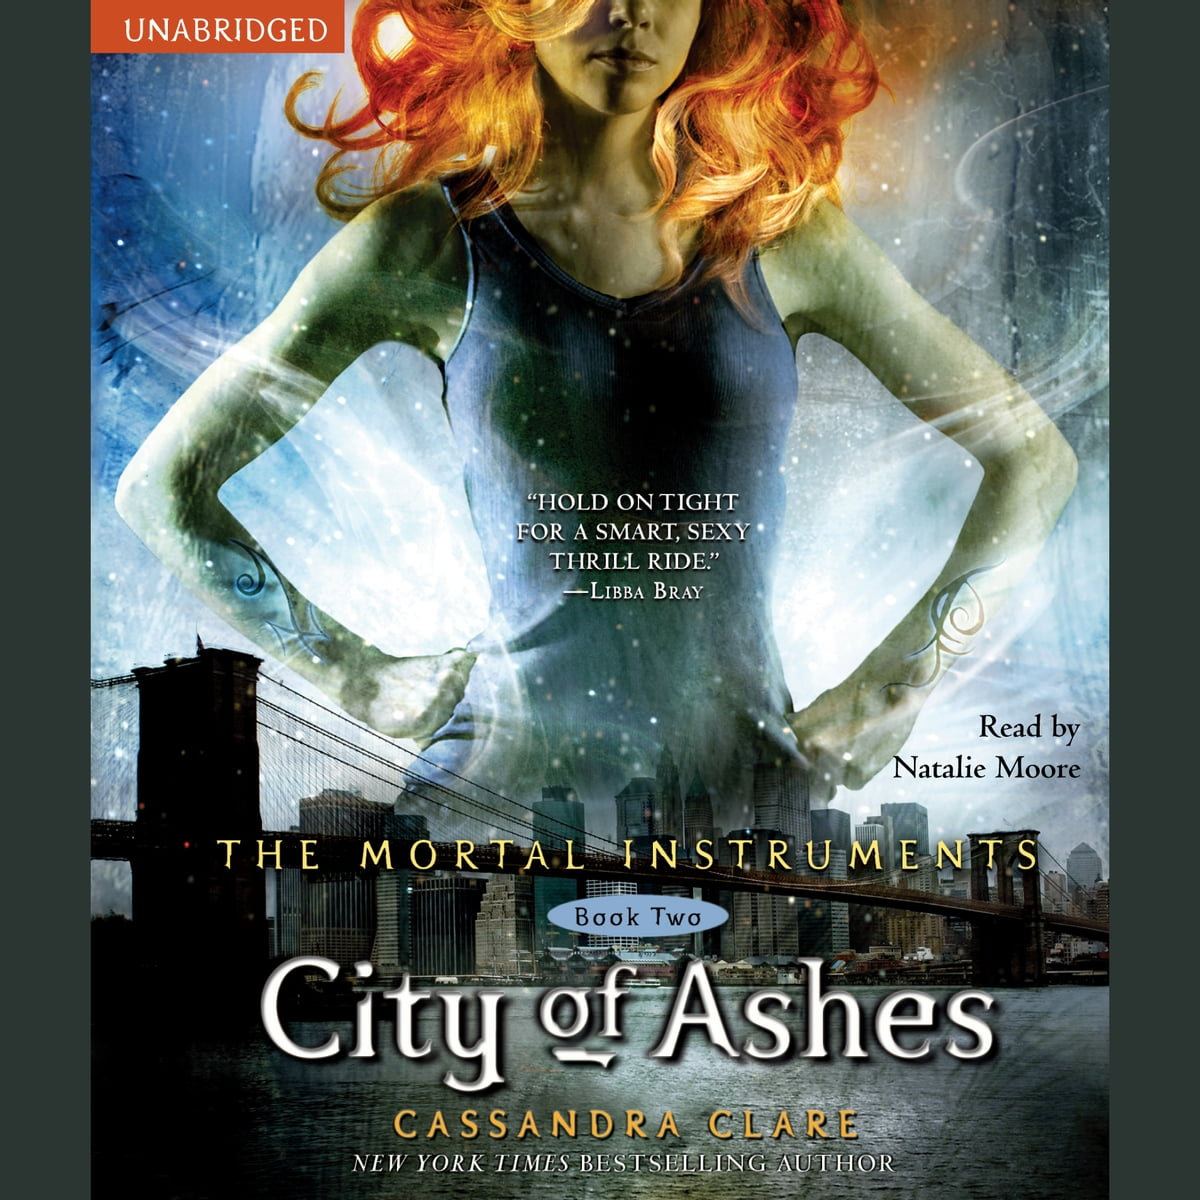 city of ashes audiobook free online